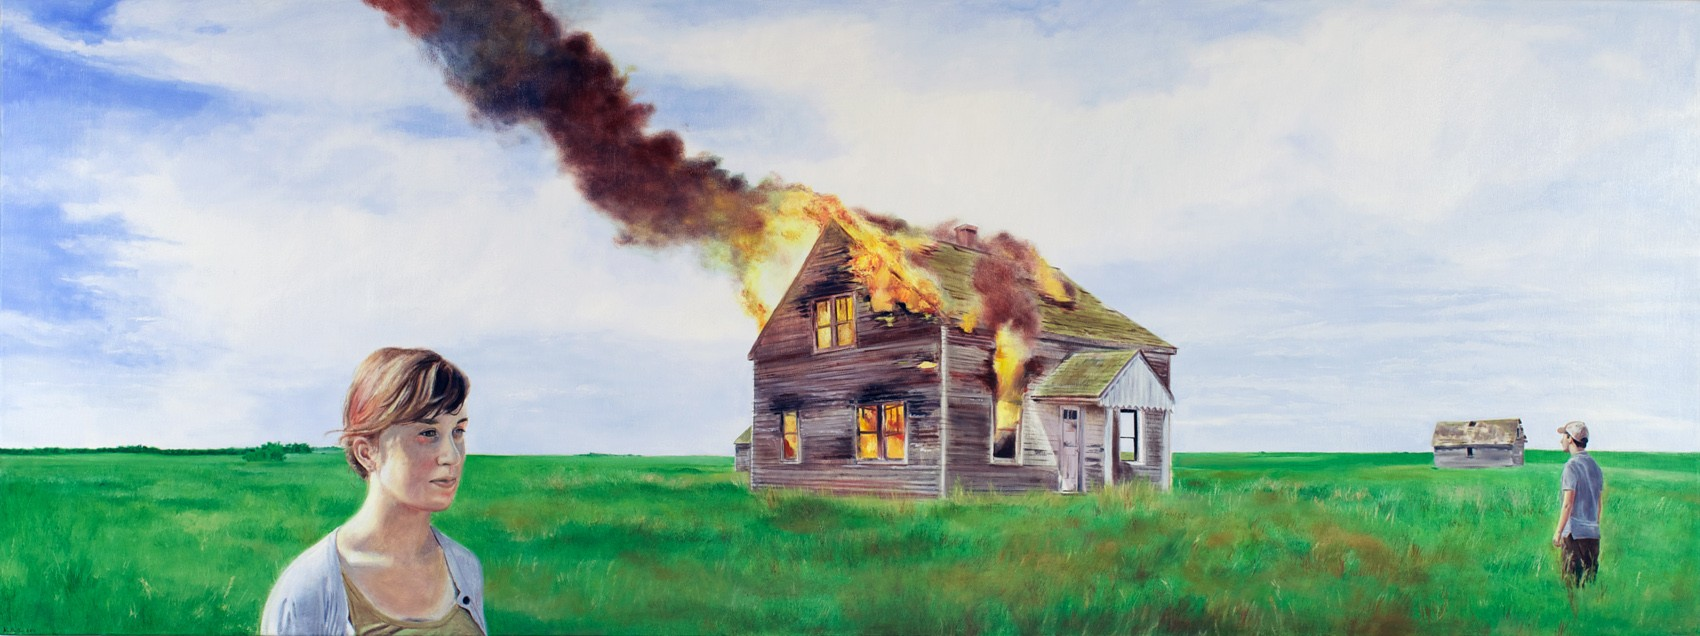 "Artwork – Nate Burbeck, ""American Decadence (Codington County, South Dakota)"", 2011"